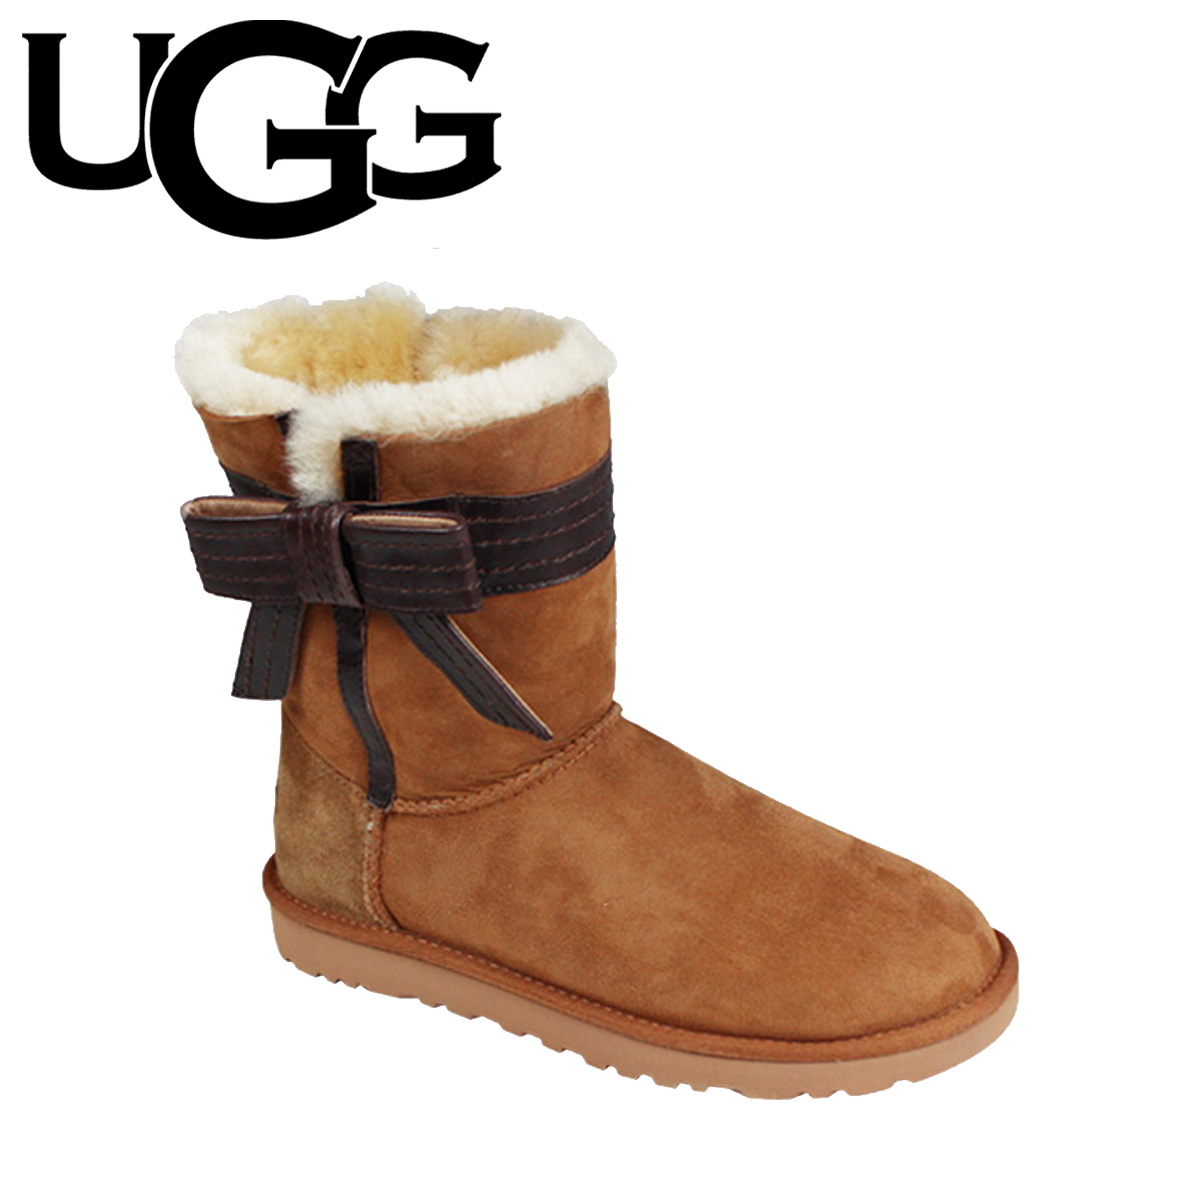 Comfortable Ugg Josette Boots Womens Sangria Online Shopping